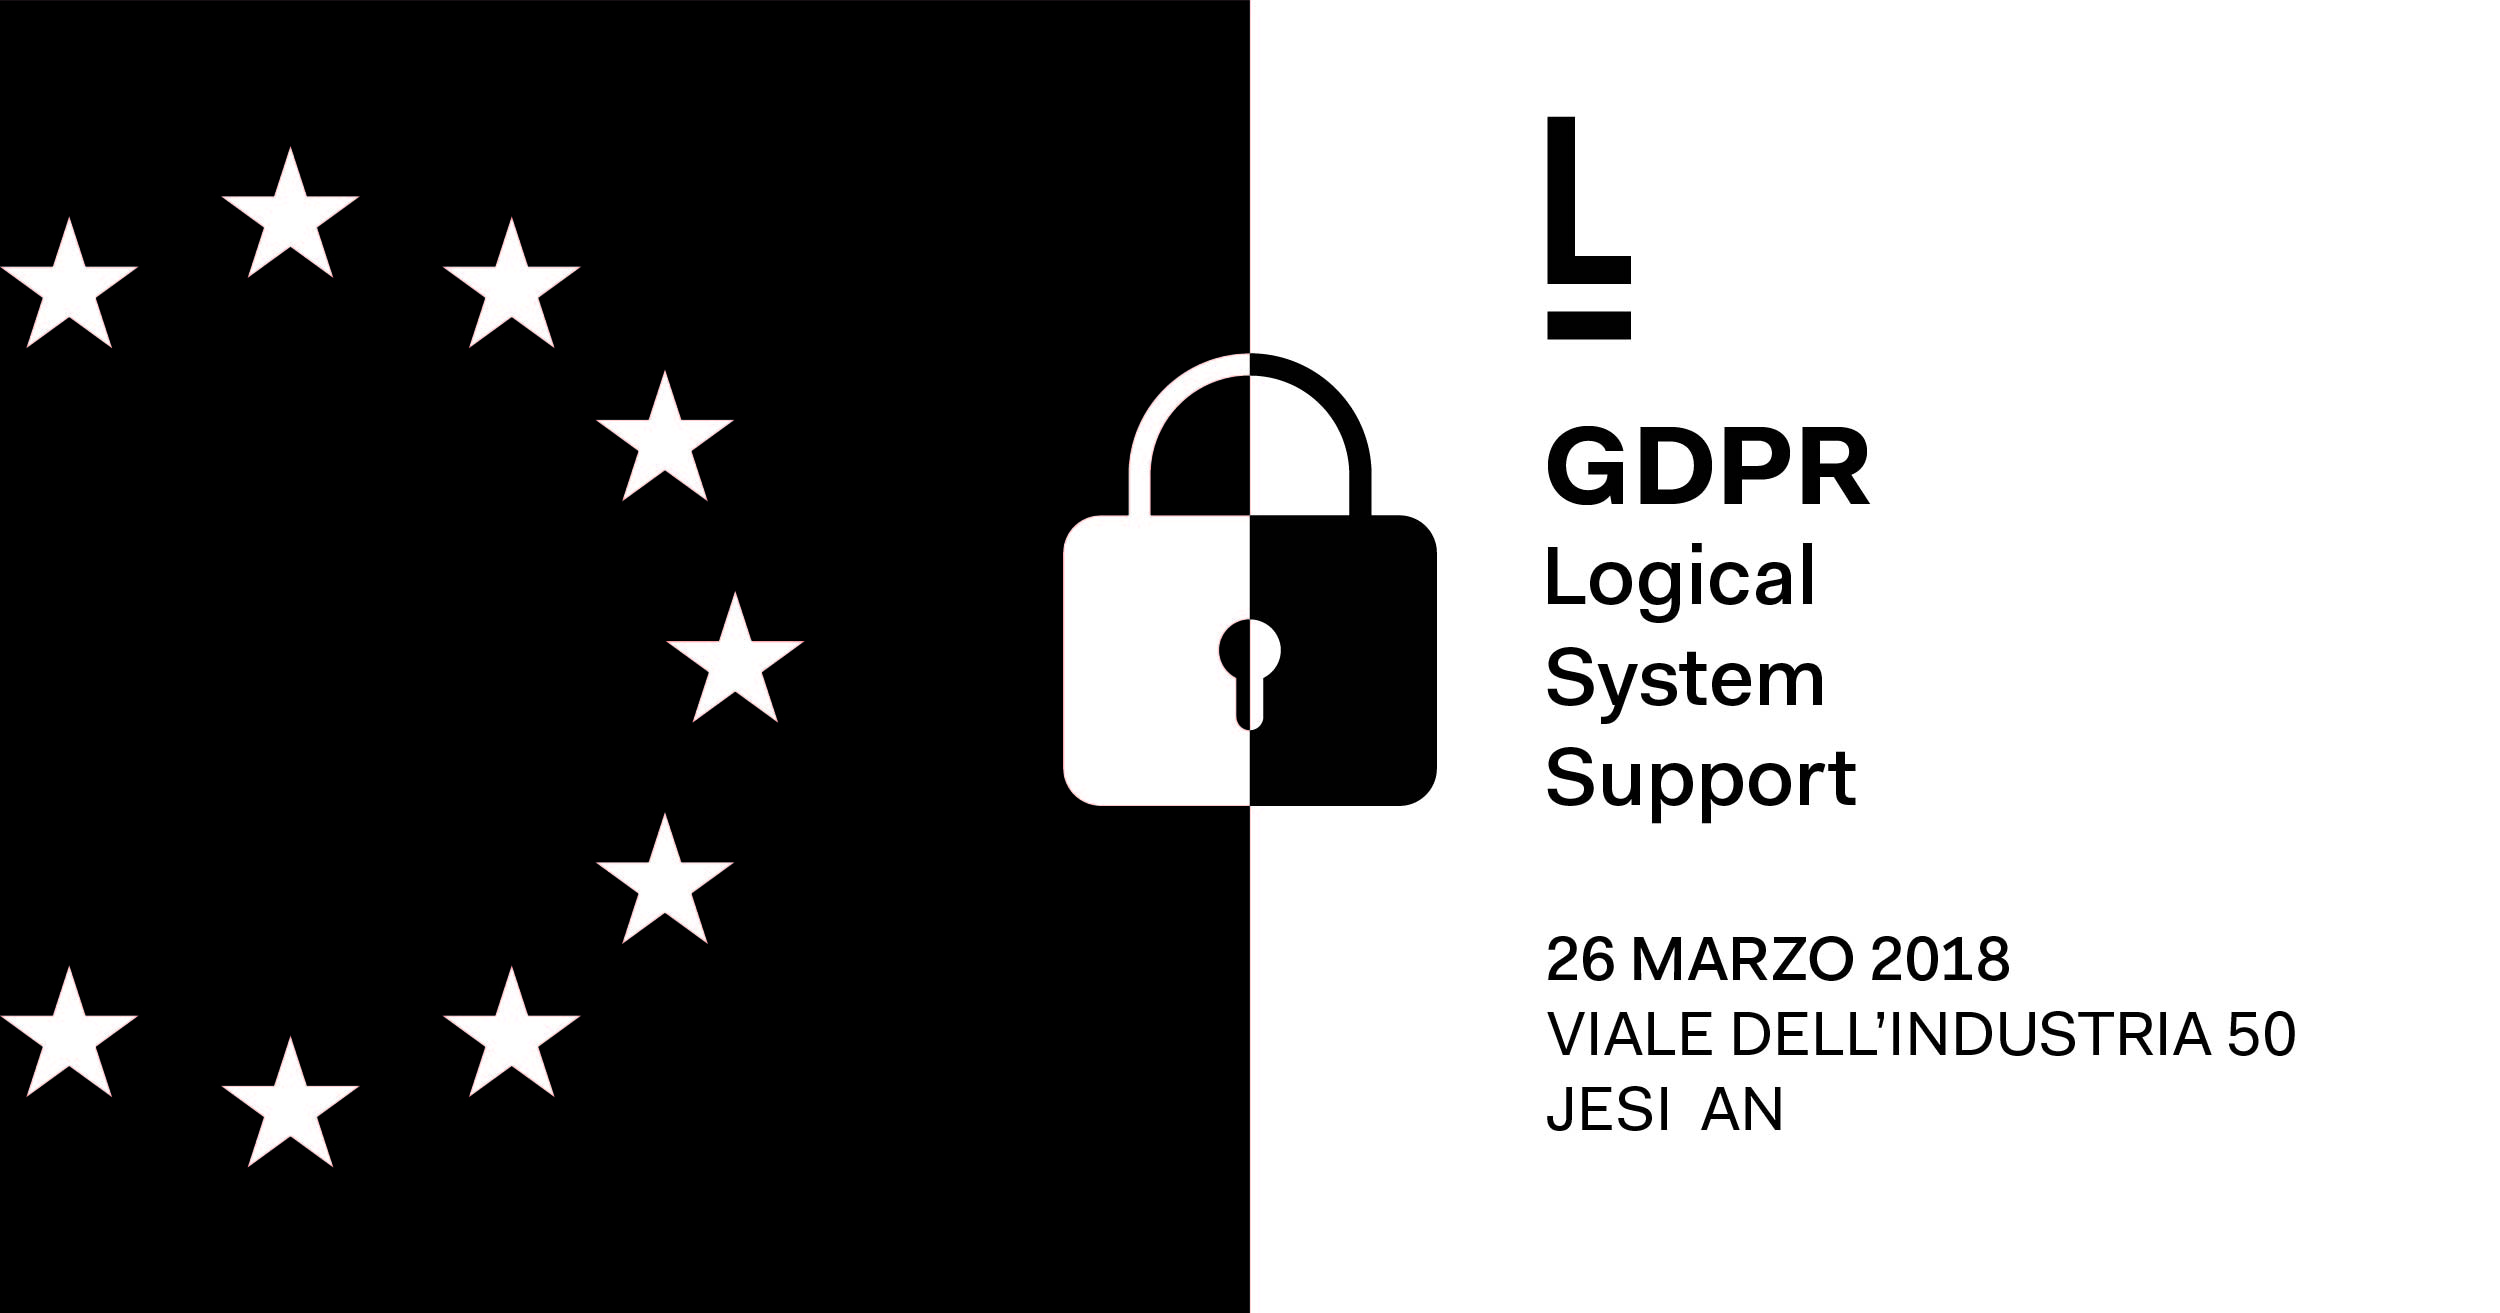 GDPR Logical System Support - Lunedì 26 Marzo, ore 14.30 - Jesi